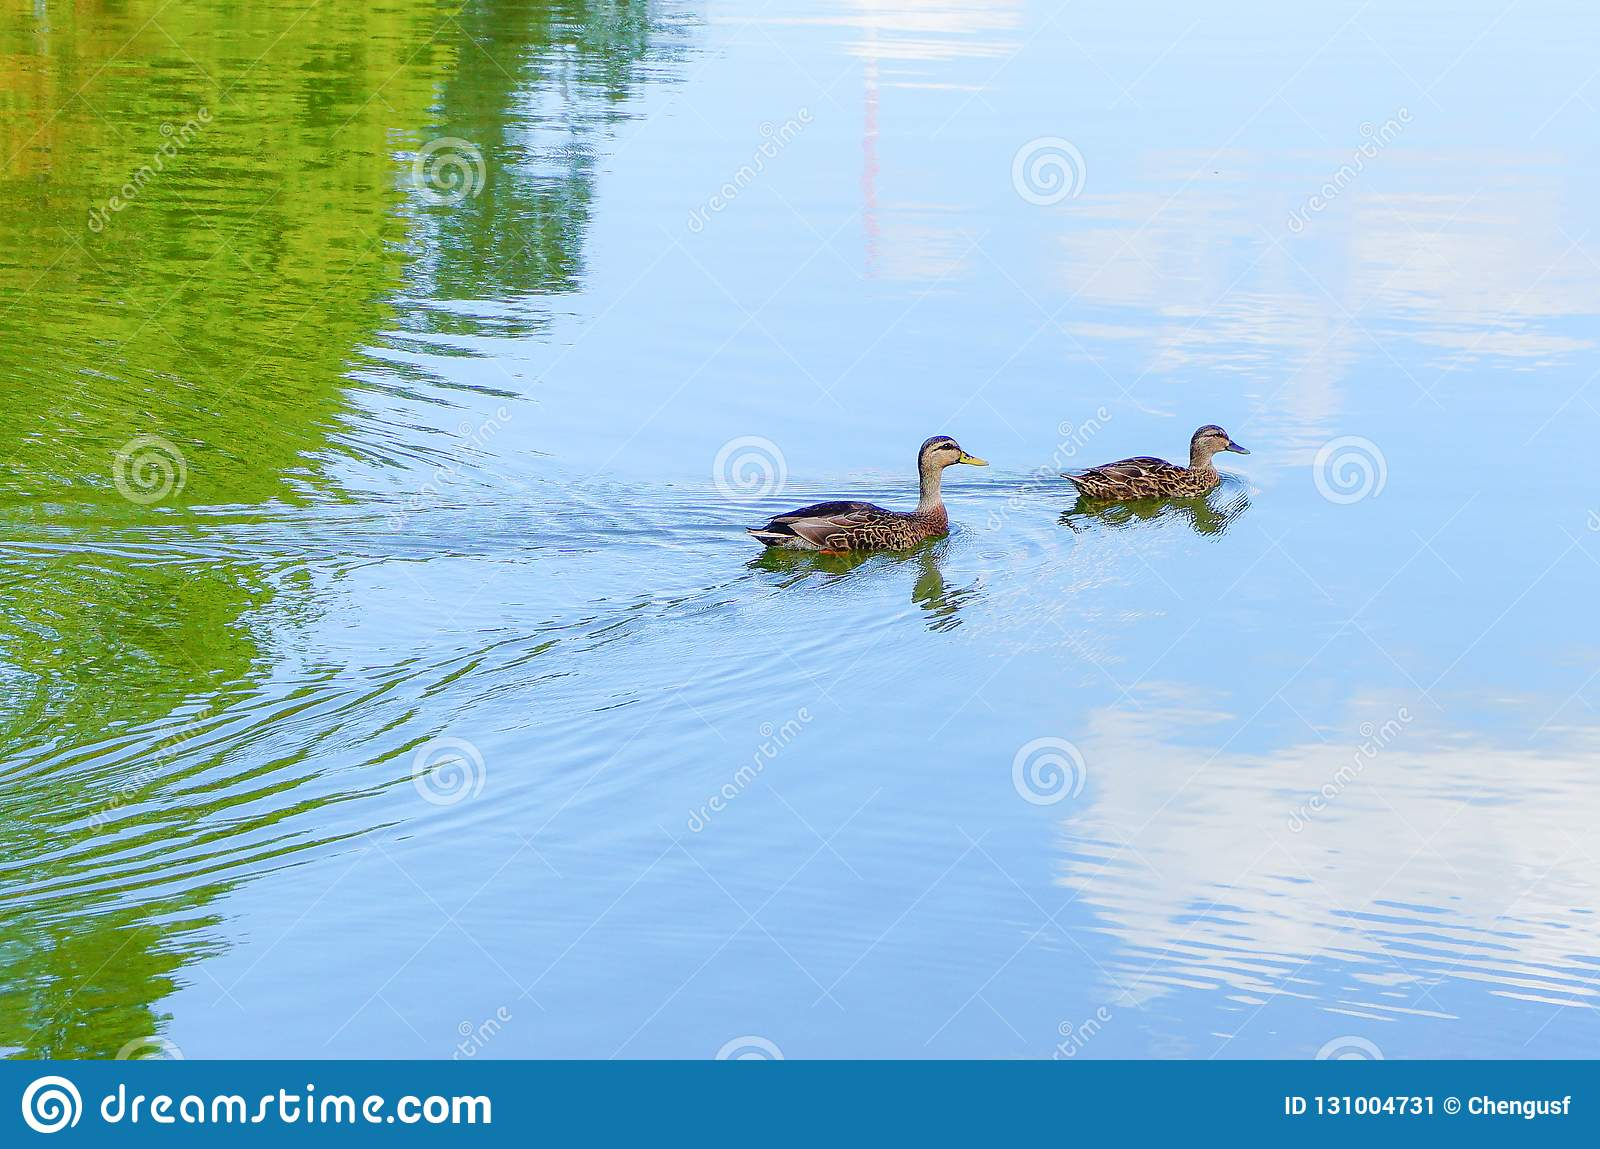 Mother Muscovy Duck And Kid Stock Image - Image of lake